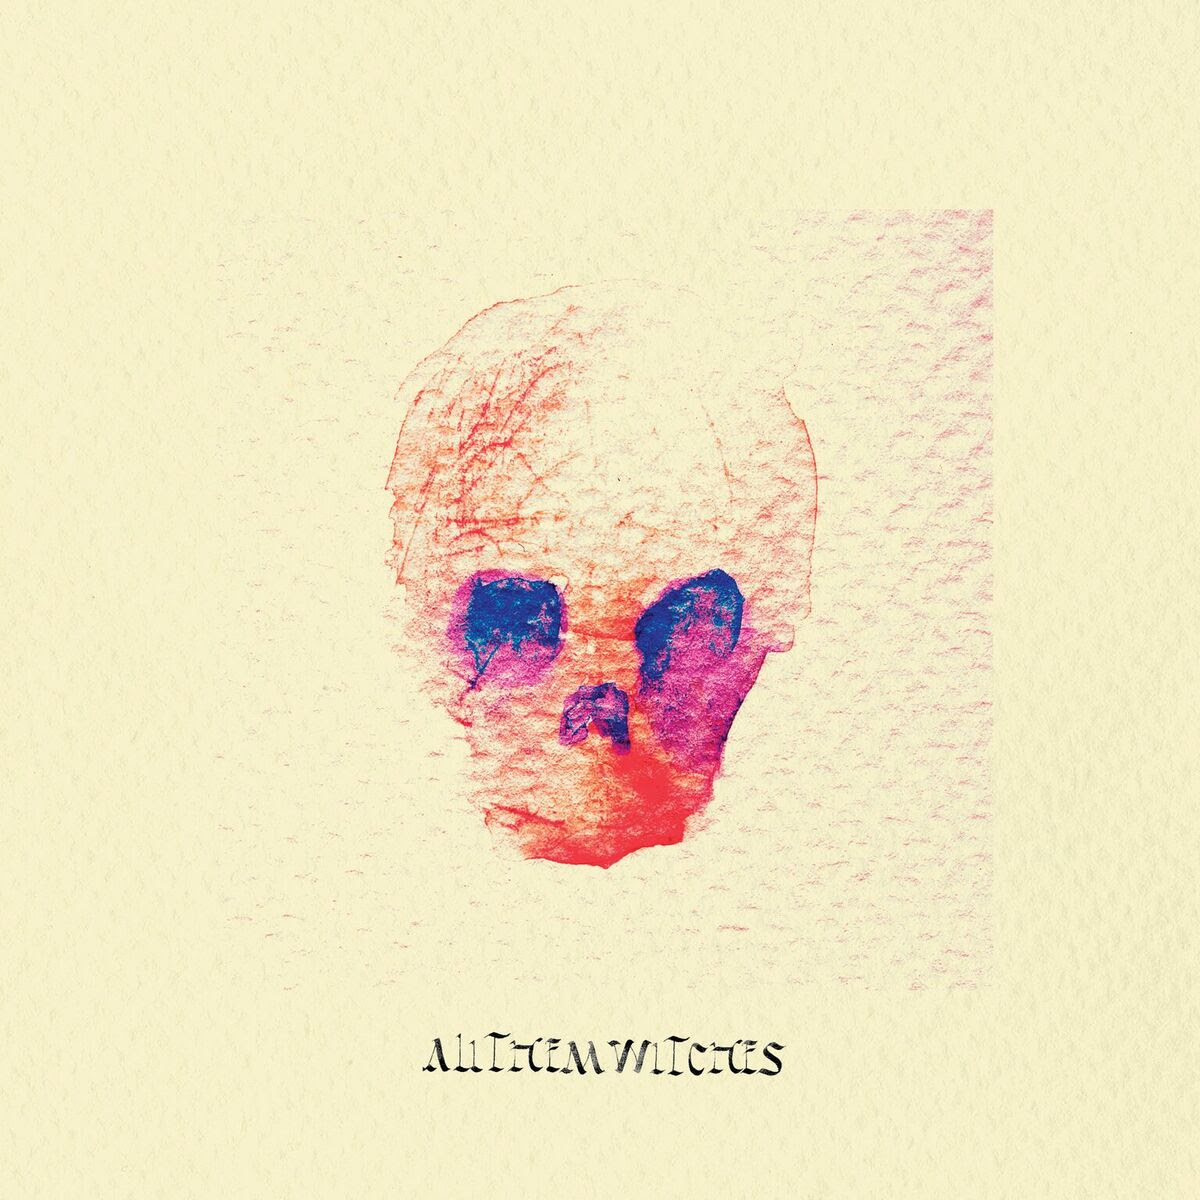 """All Them announce new album 'ATW', share single """"Fishbelly 86 Onions"""". The full-length comes out on September 28th via New West Records."""